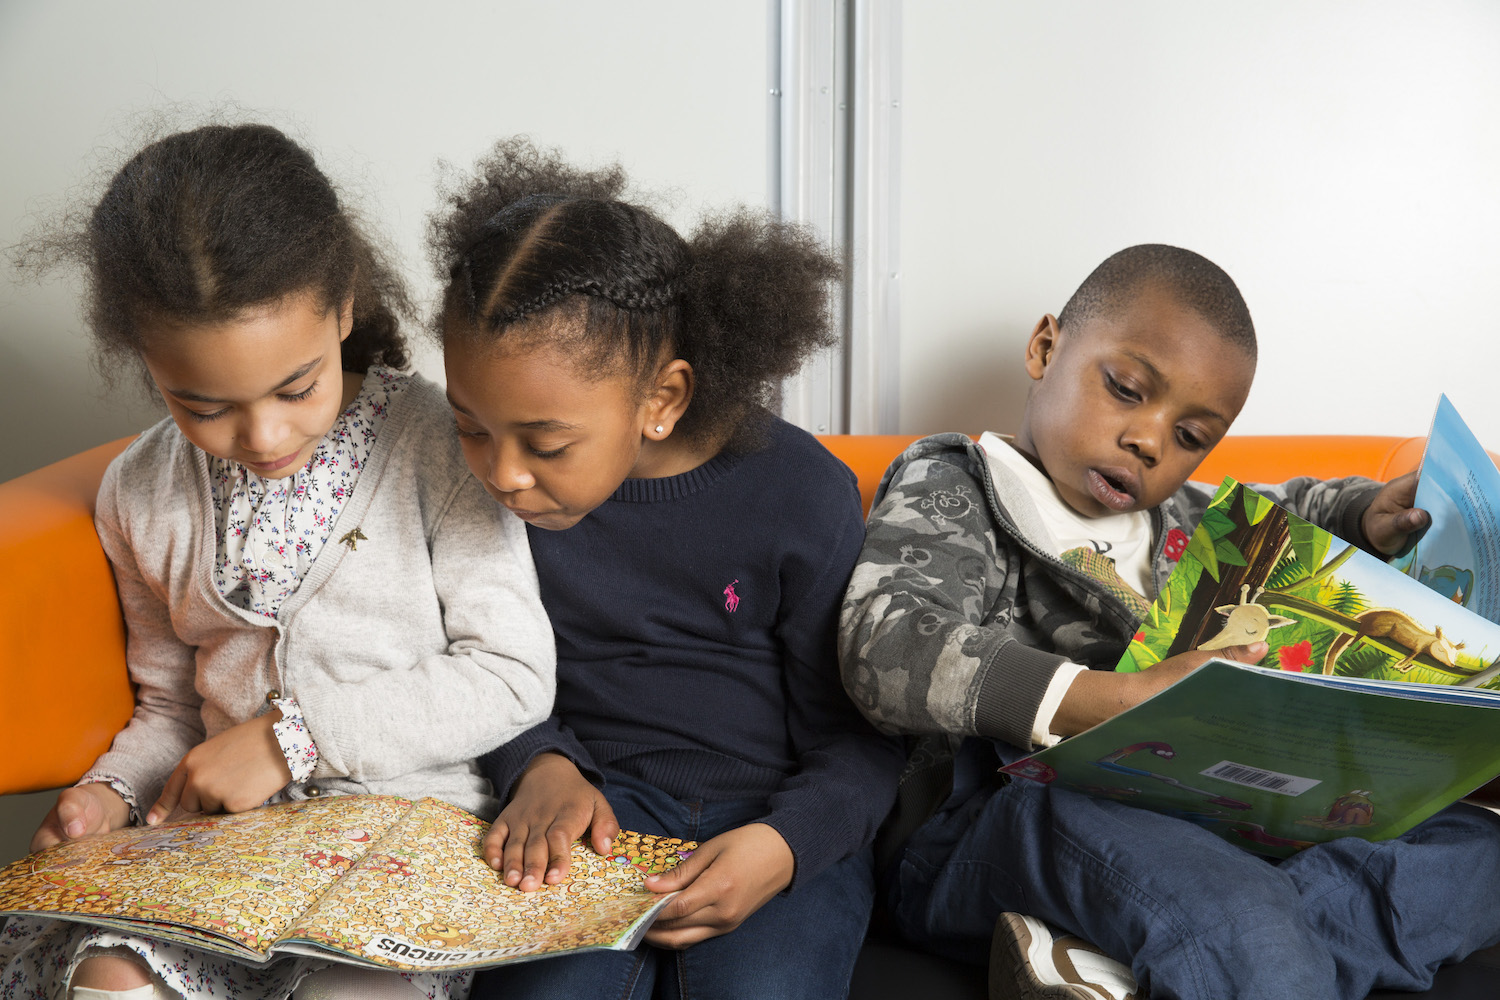 Children at The Reading Agency's Summer Challenge, Deptford Library, London